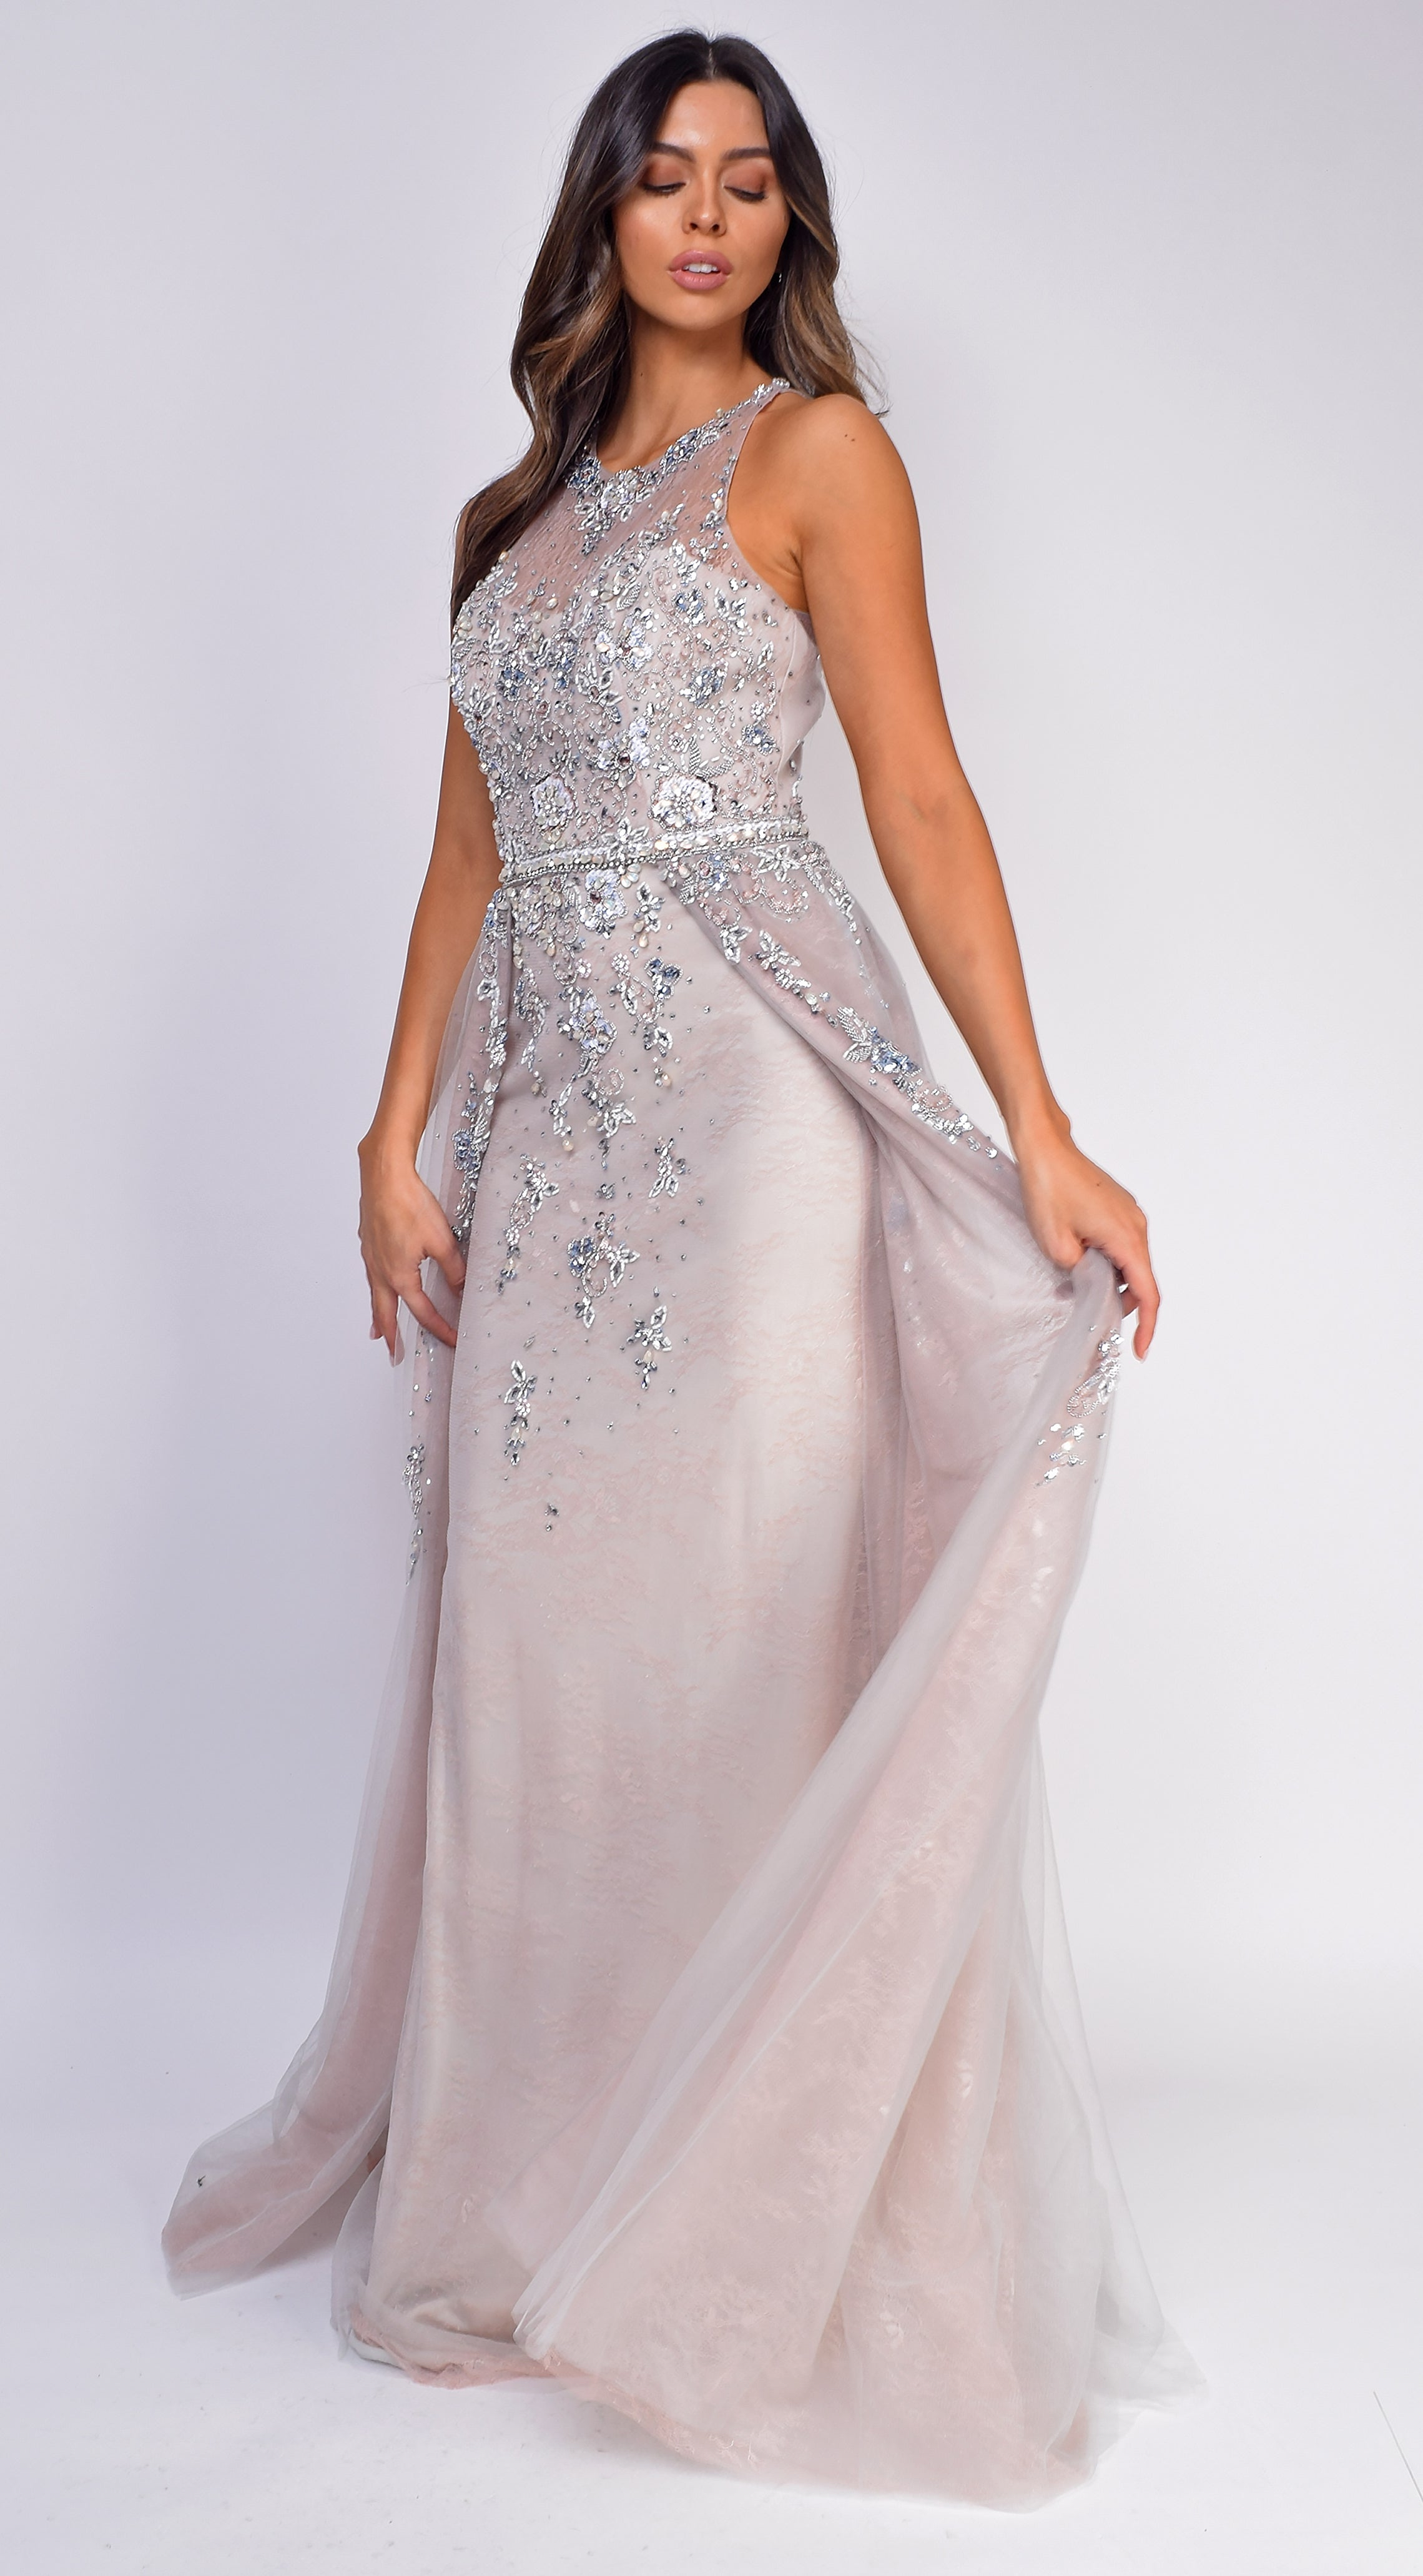 Danna Pink Silver Lace Beaded Flyaway Gown